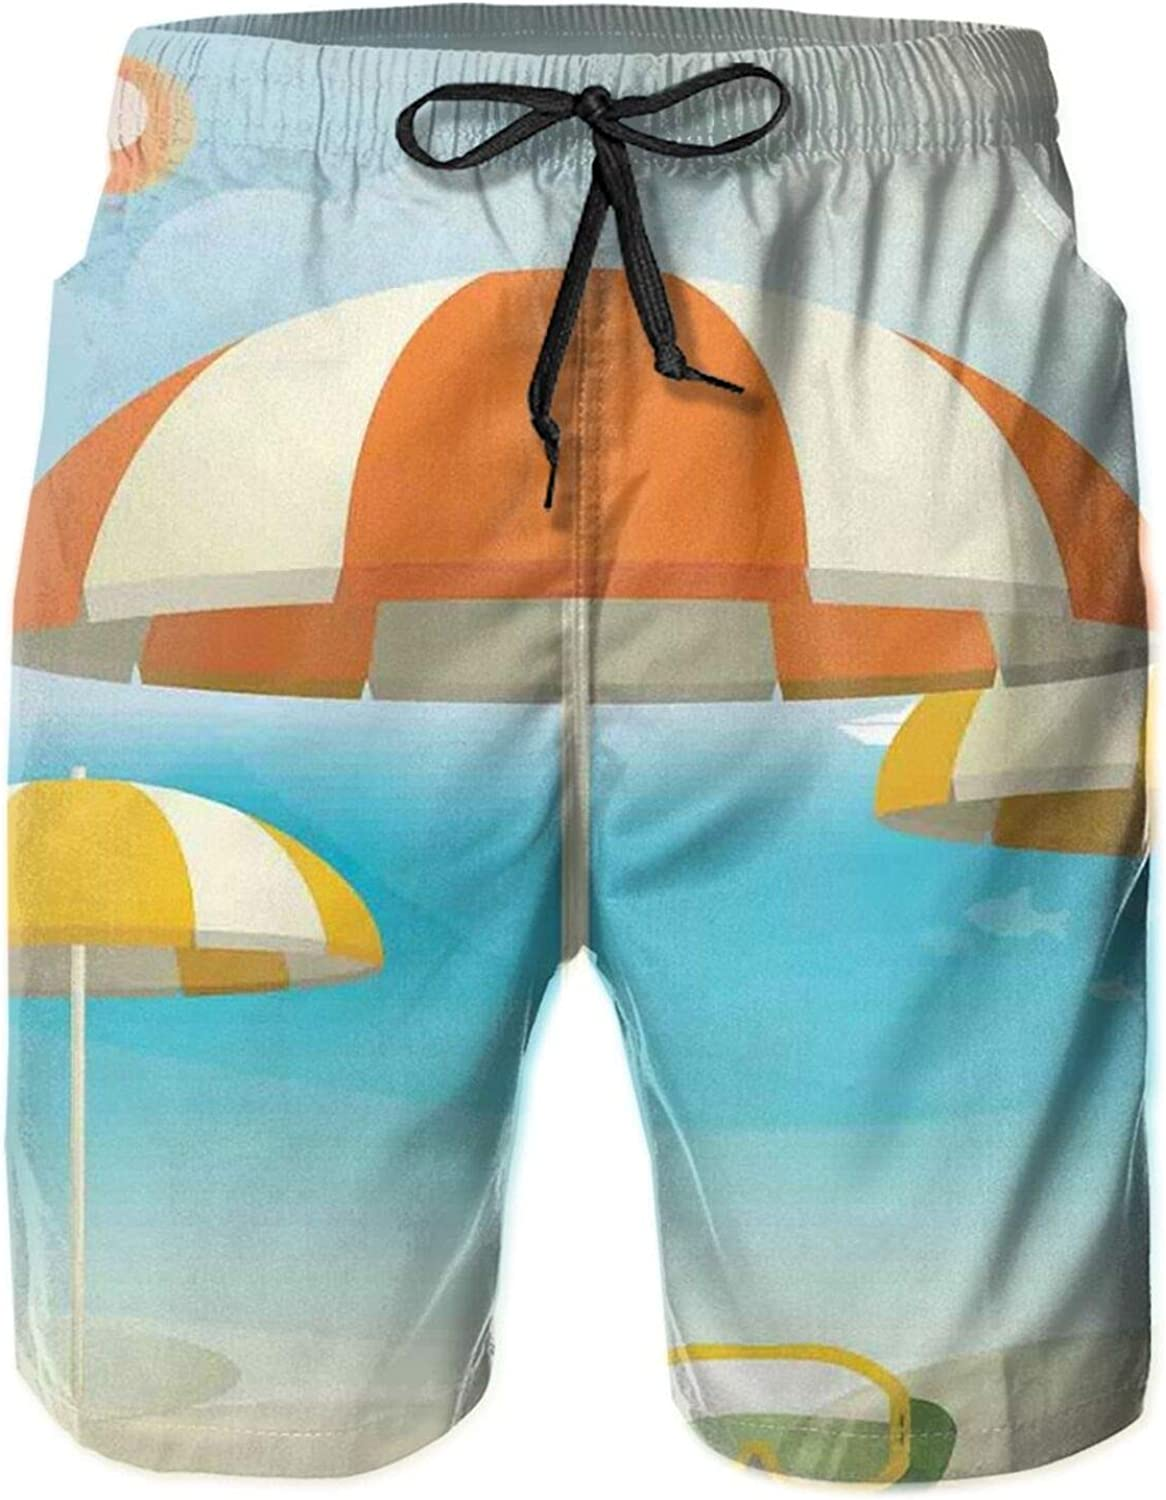 Umbrellas On The Coast Summer Season Theme with Plane Birds and Fish Seaside Vacation Swimming Trunks for Men Beach Shorts Casual Style,L